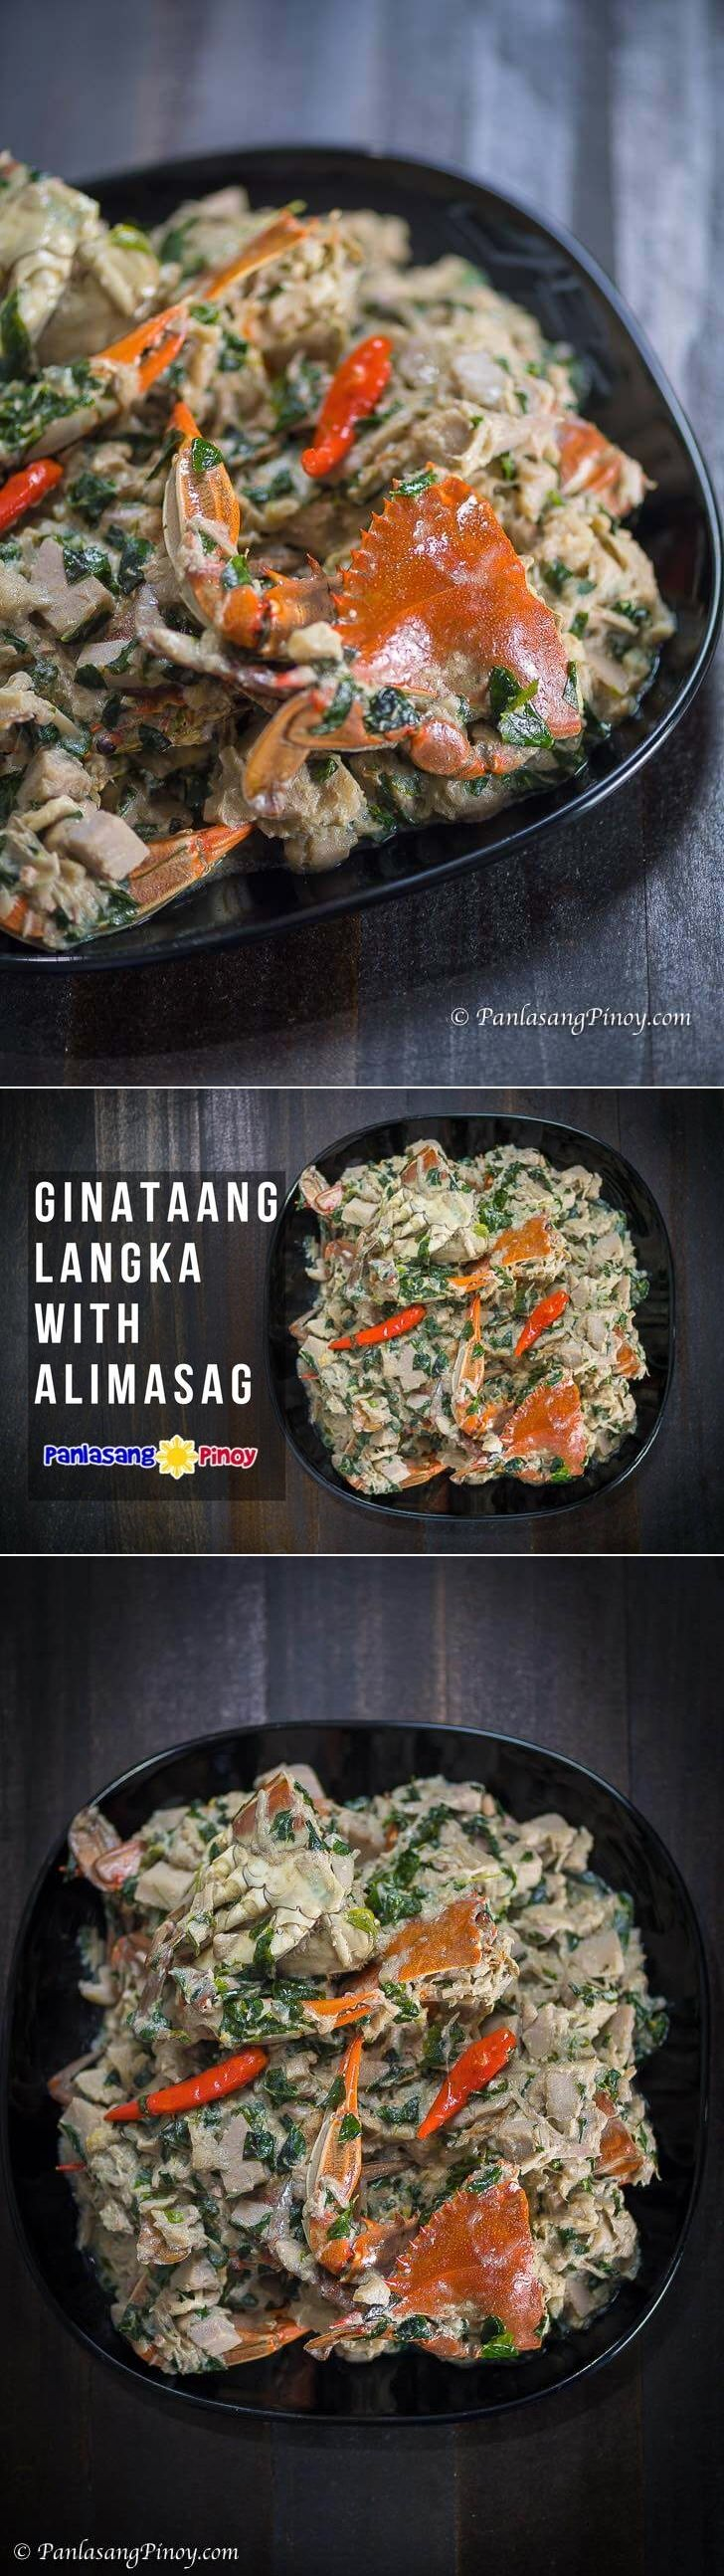 Ginataang langka with alimasag is a dish composed of young (unripe) jackfruit, blue crabs, and gata. The jackfruit is sautéed in garlic, onion, and ginger and then cooked with coconut milk. Crabs and malunggay leaves are added in the middle of the cooking process.